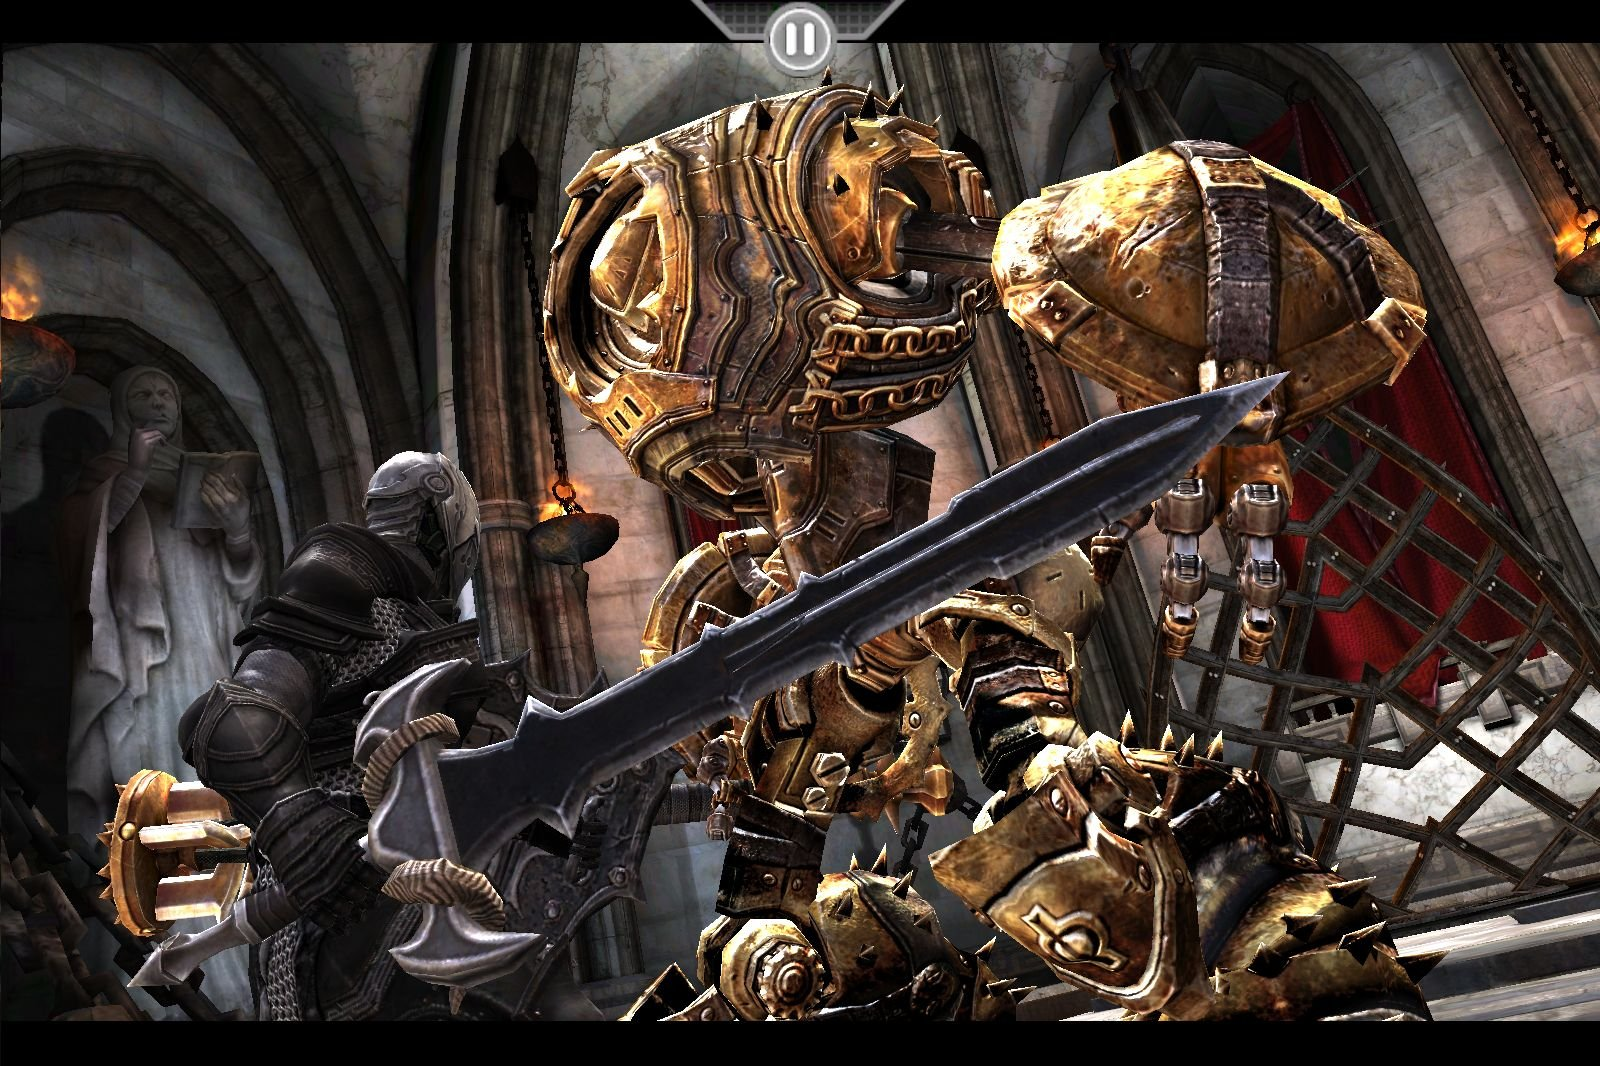 Infinity Blade 2 HD Wallpapers Backgrounds 1600x1066